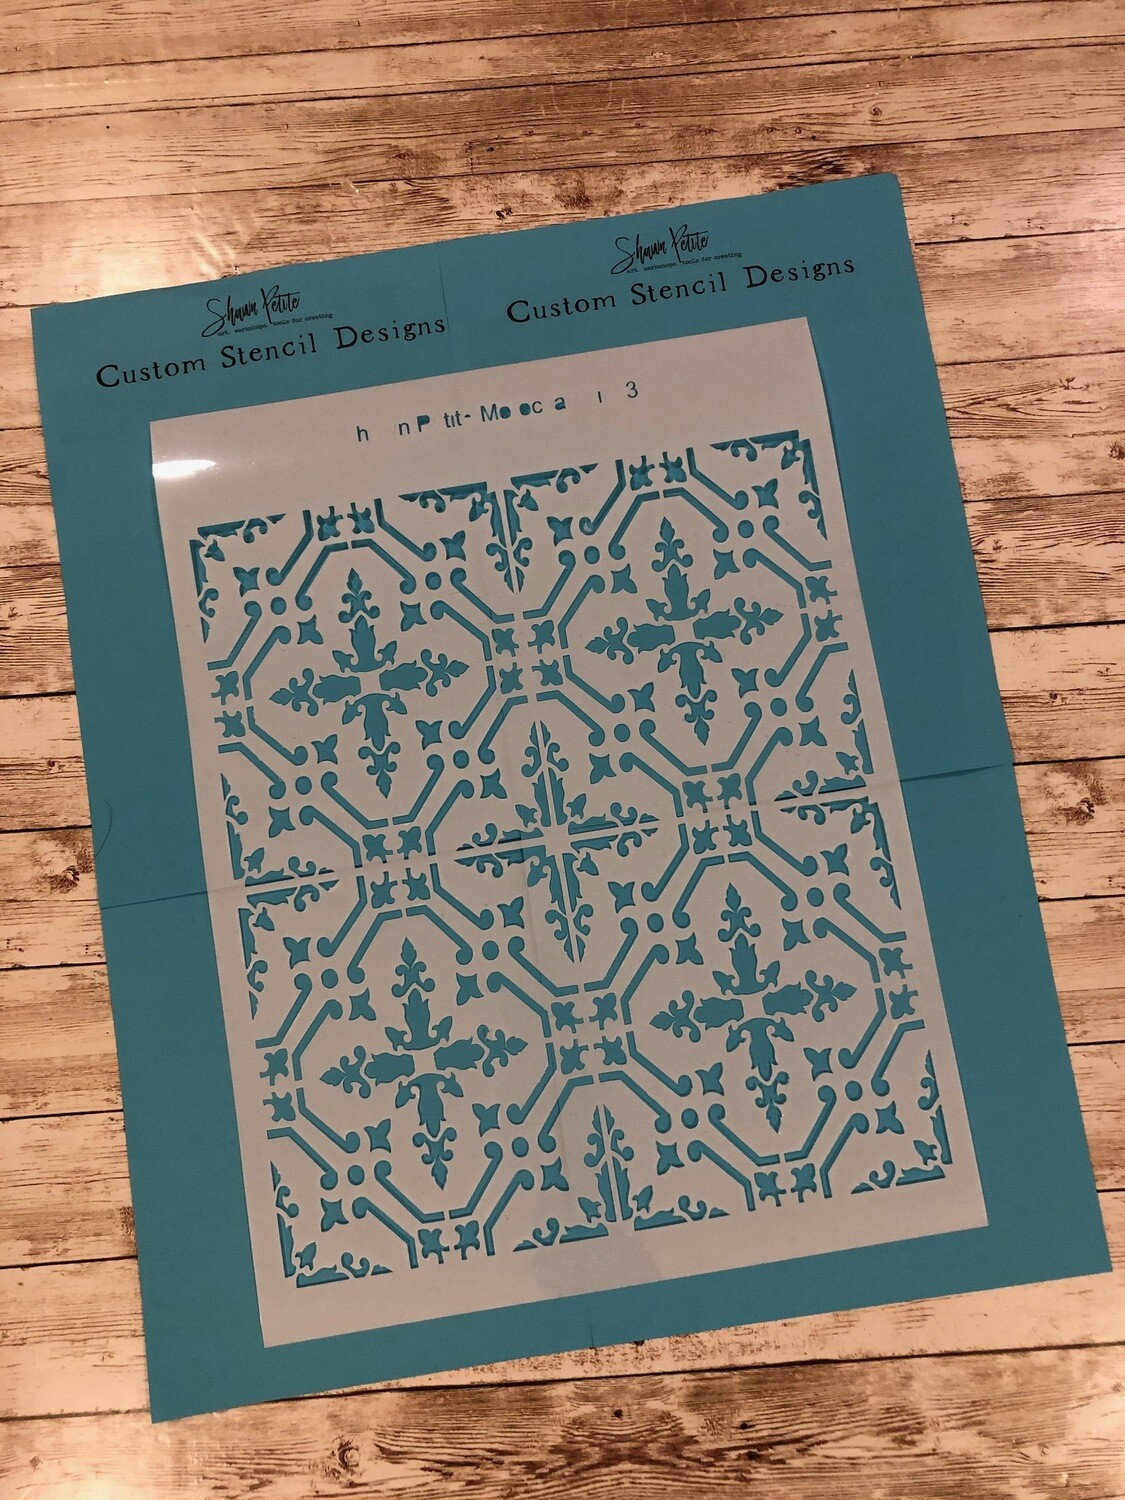 Moroccan Tile 3 12x16 clearance stencil